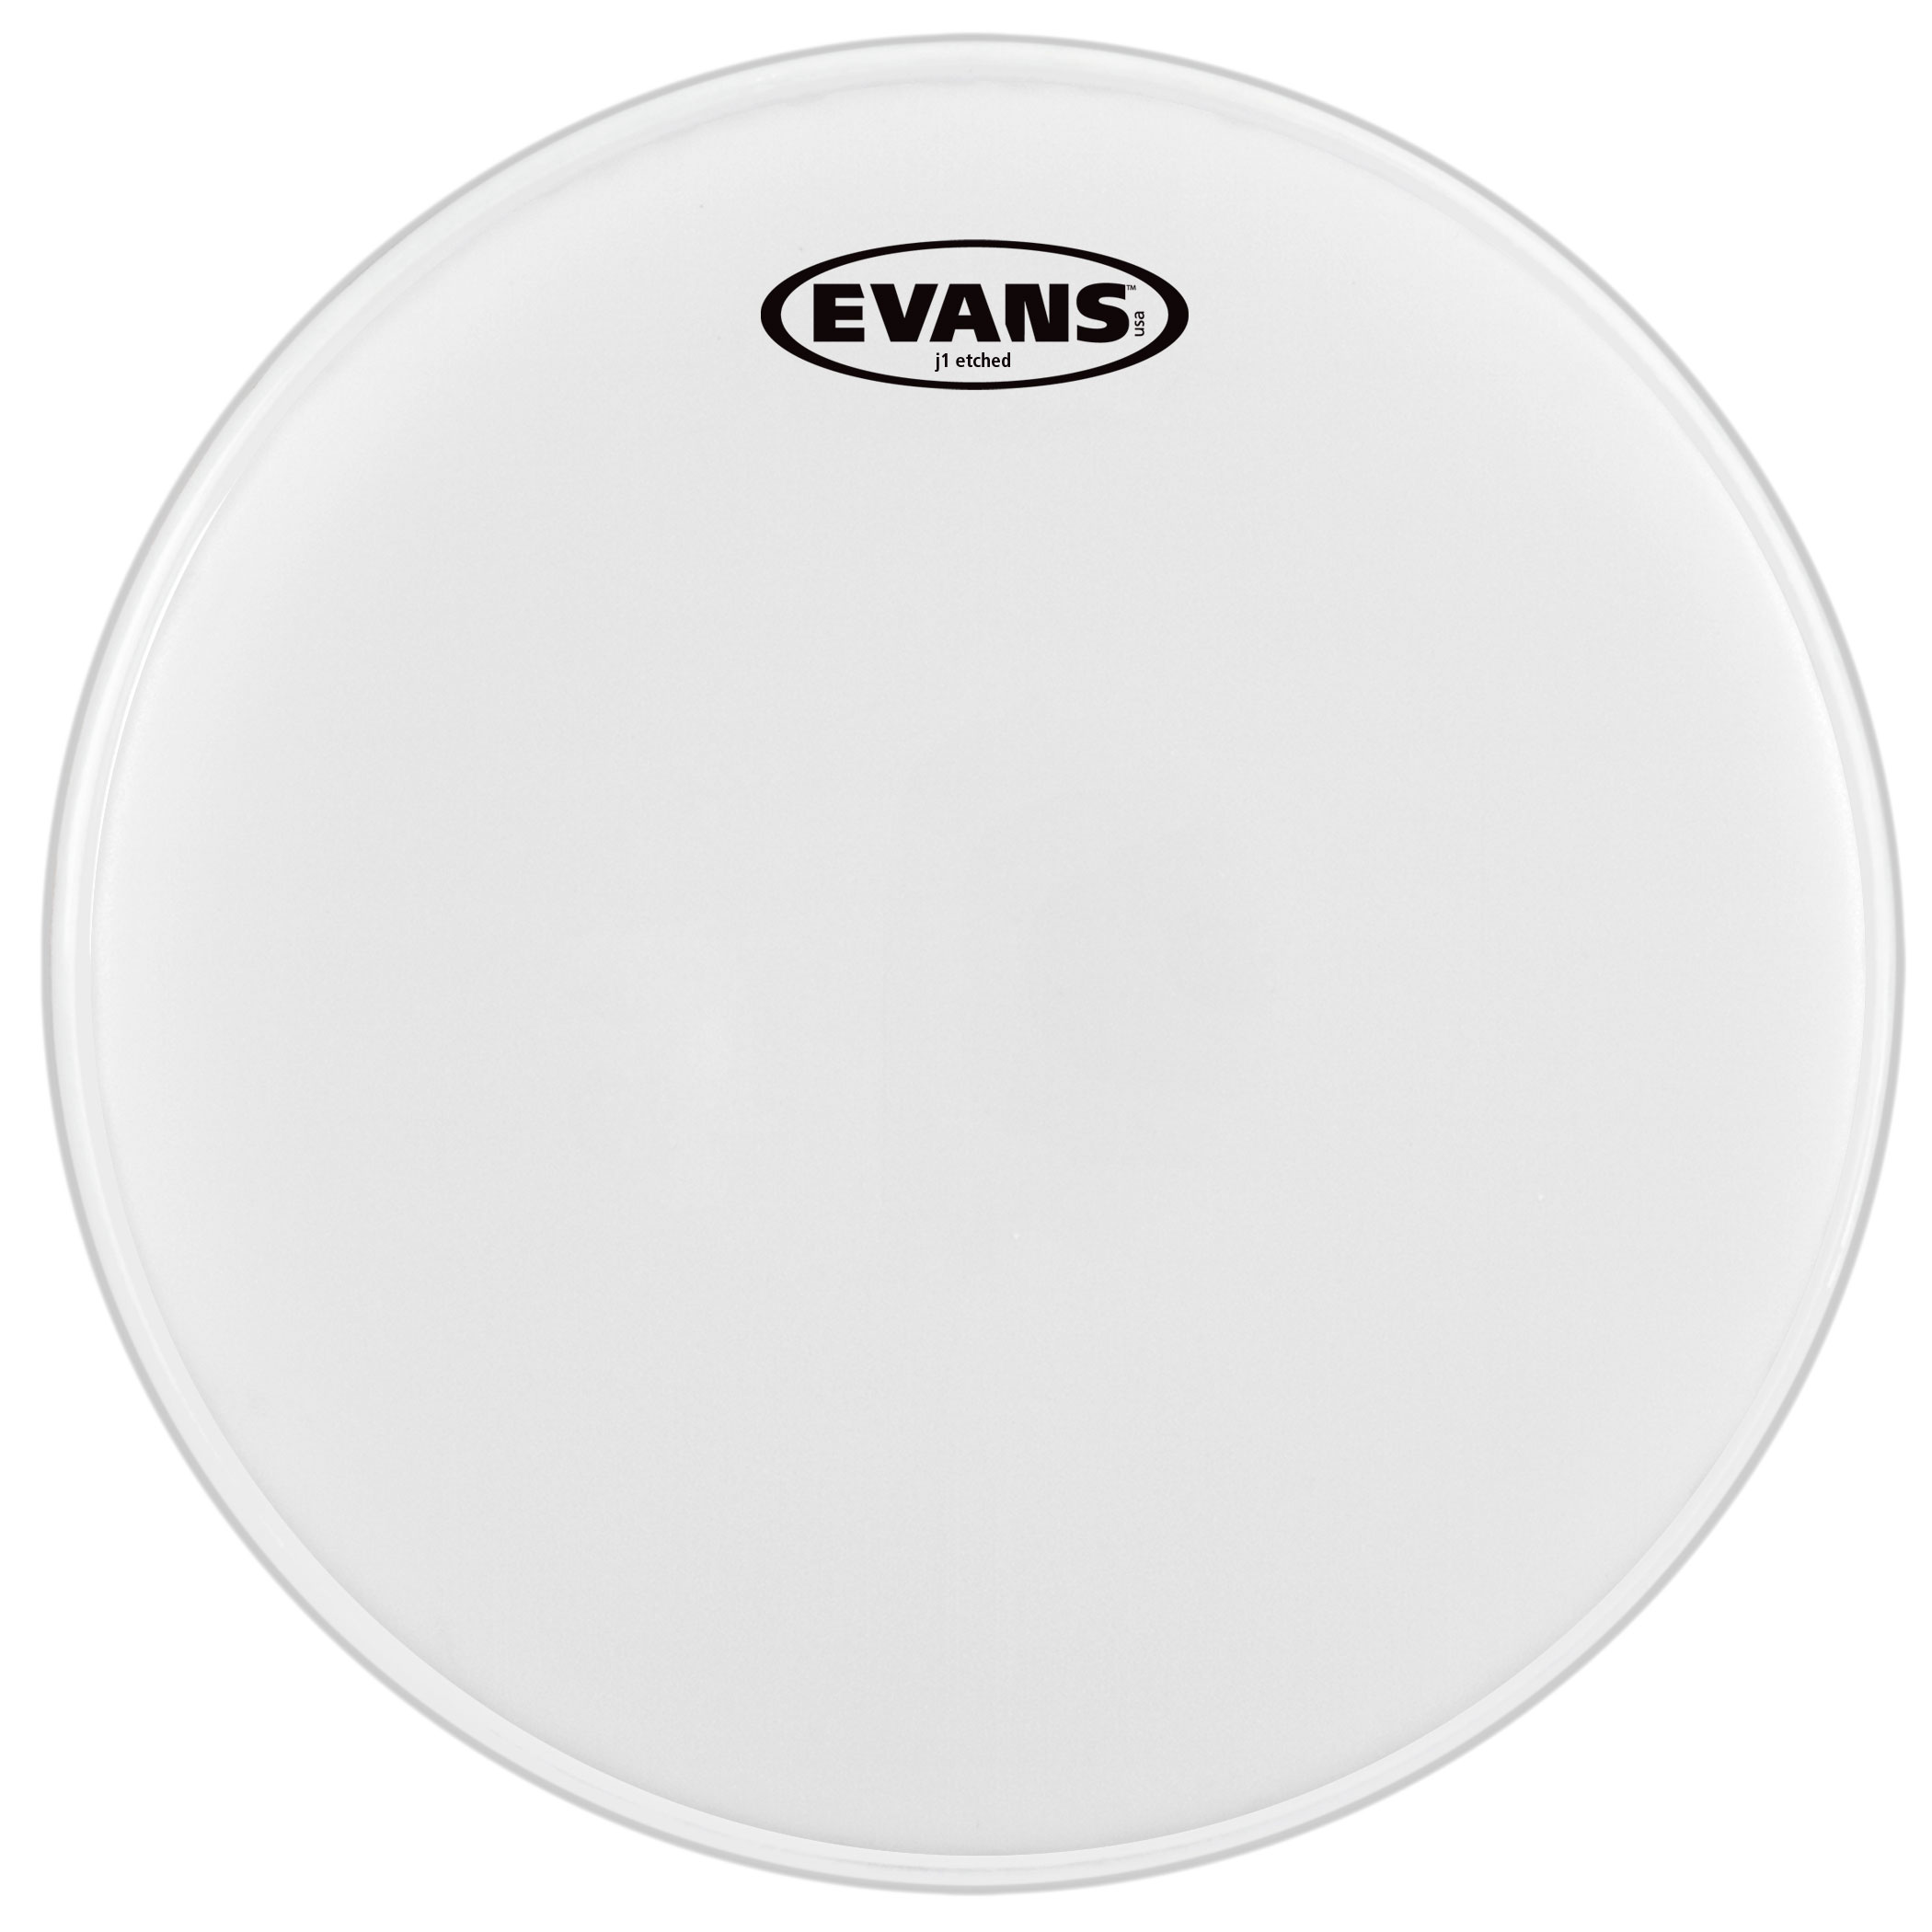 "Evans 6"" J1 Etched Head"